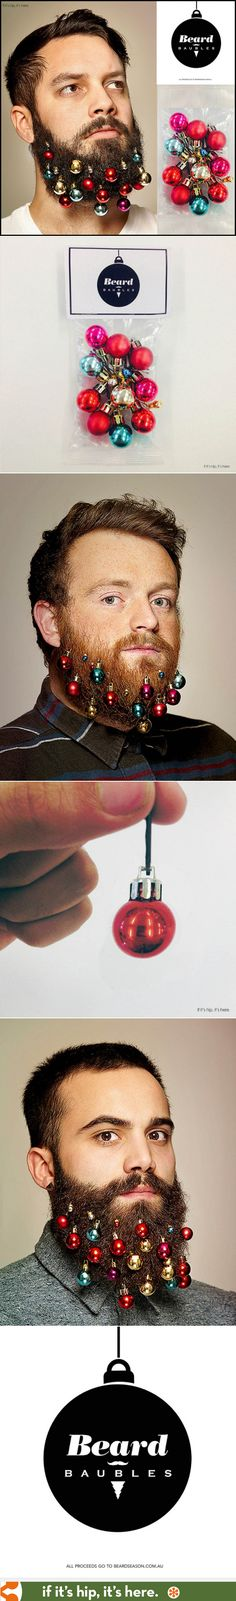 Beard Baubles Make Hipster Facial Hair Festive. | http://www.ifitshipitshere.com/beard-baubles/